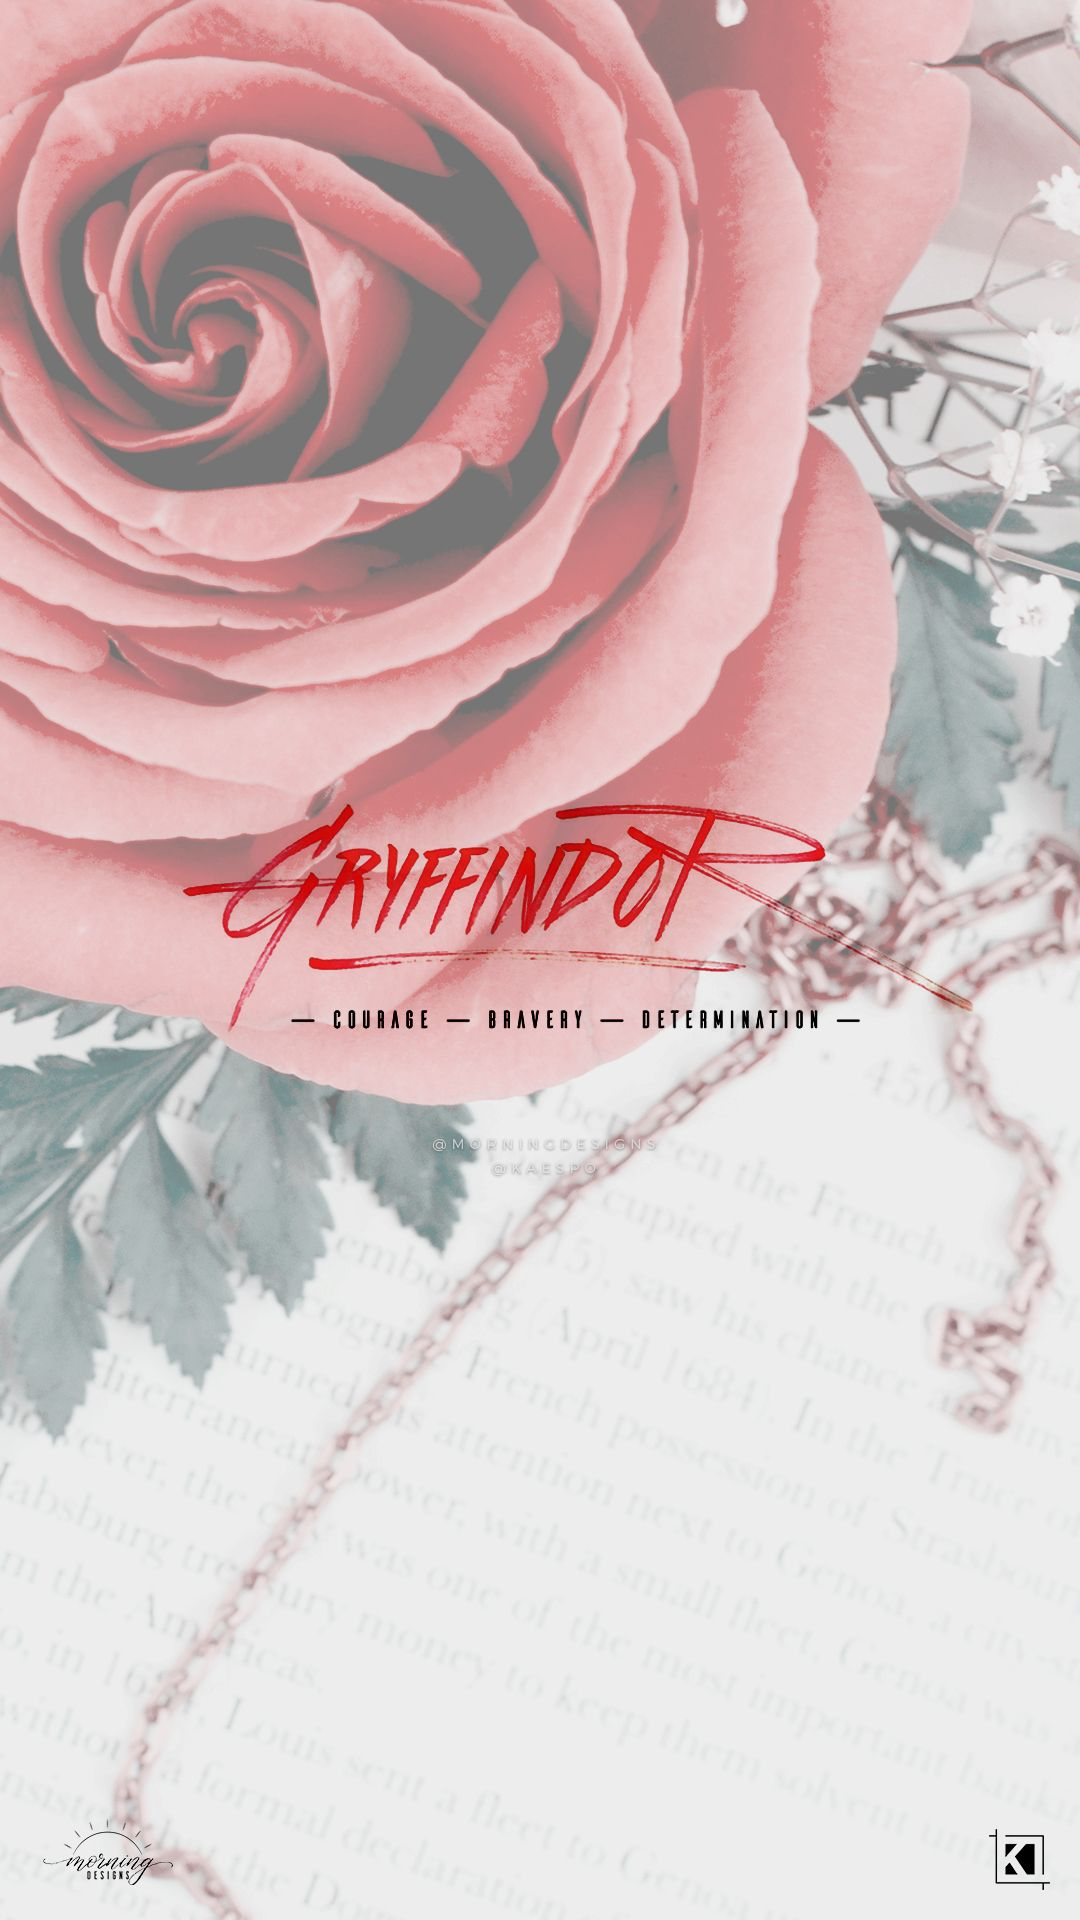 Floral Gryffindor Aesthetics Phone Wallpaper Background Collab By Kaespo Morningd Harry Potter Wallpaper Phone Harry Potter Wallpaper Harry Potter Pictures